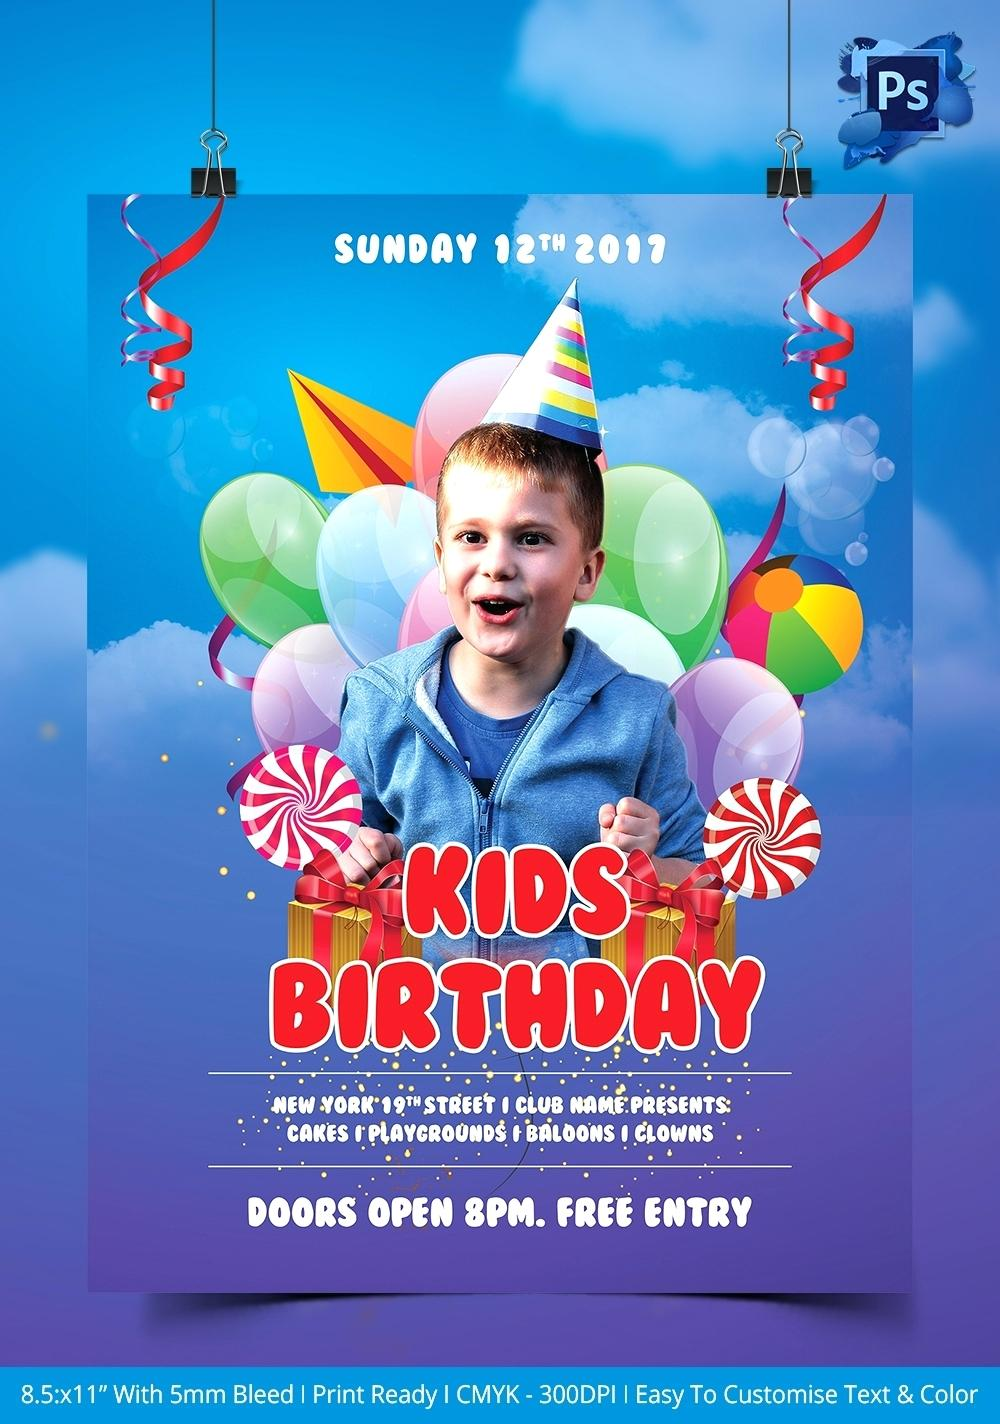 birthday invitation photoshop template ; birthday-invitation-photoshop-template-flyer-free-vector-for-with-download-card